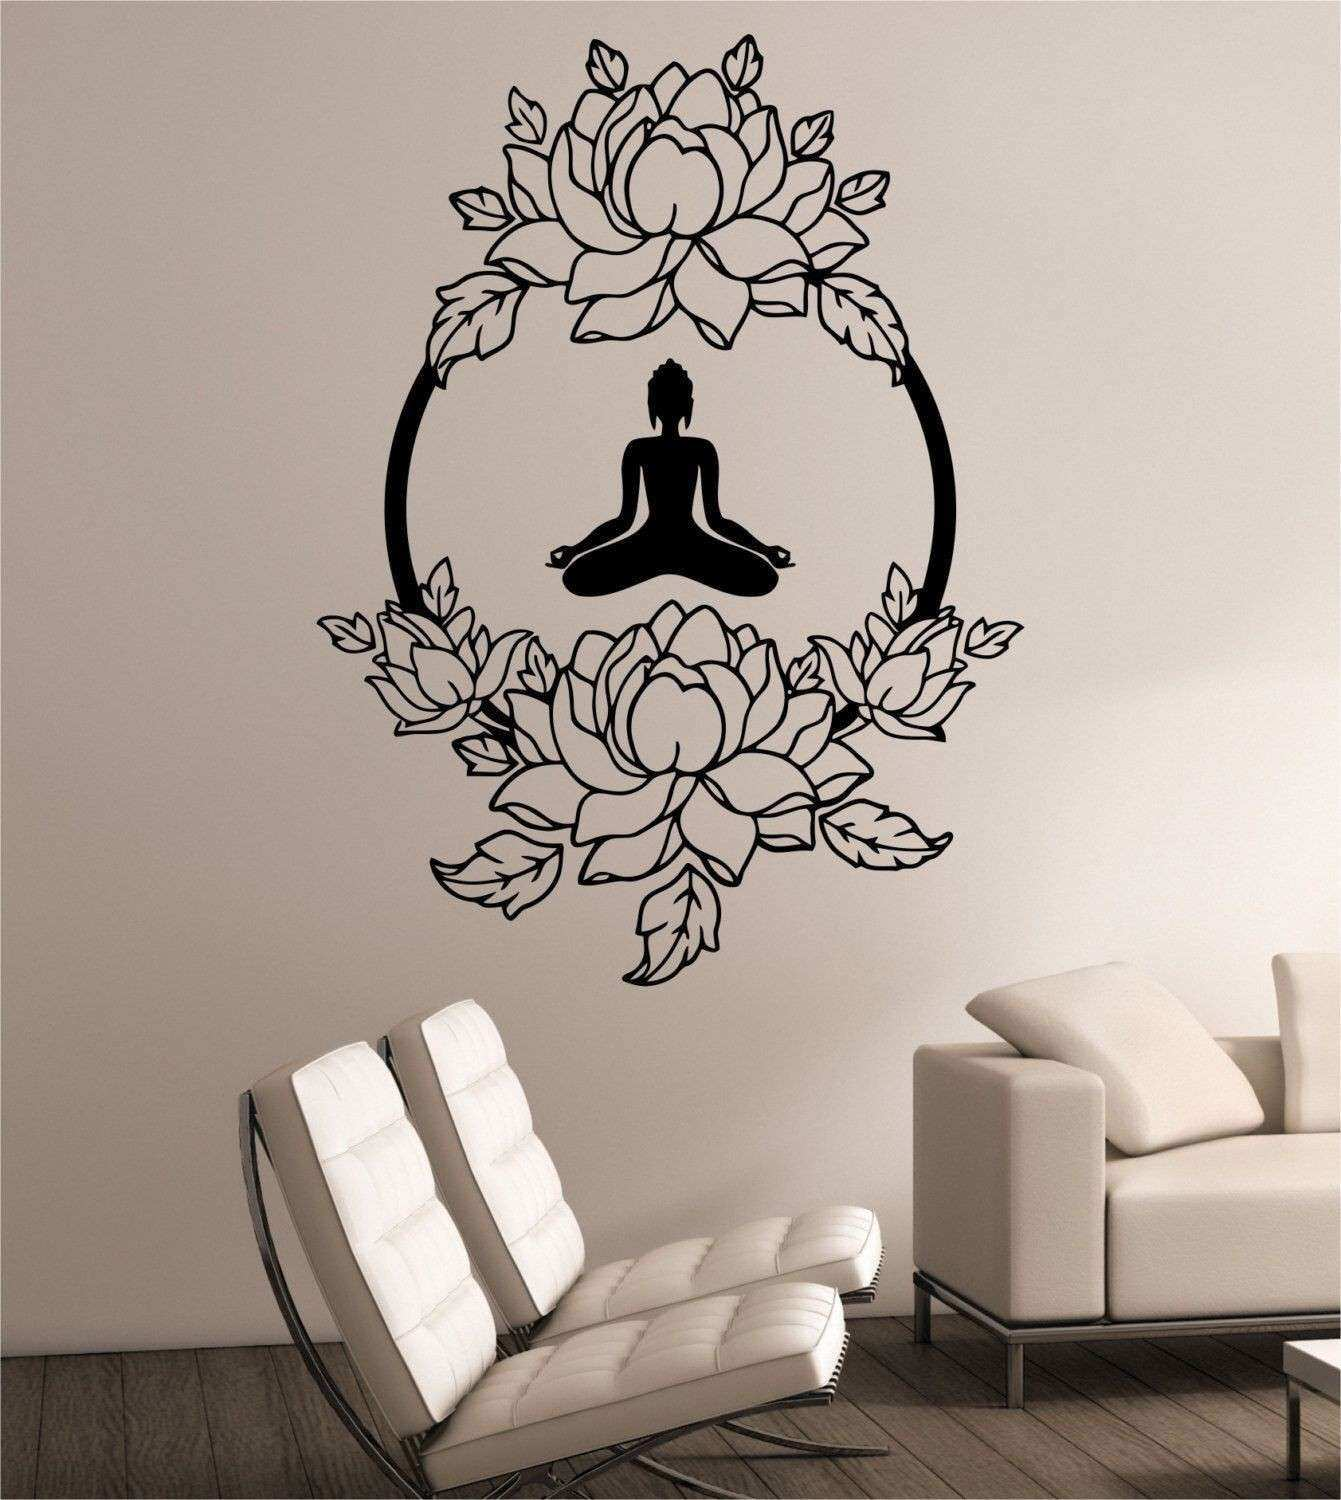 Bedroom Wall Mirrors Decorative Luxury 38 New Wall Mirrors Stickers